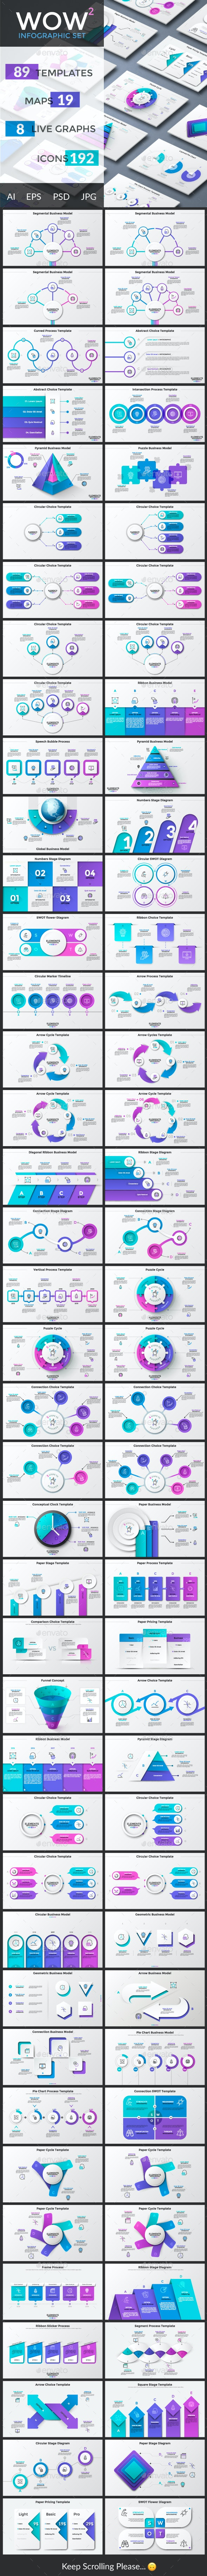 Wow-2 Infographic Collection - Infographics